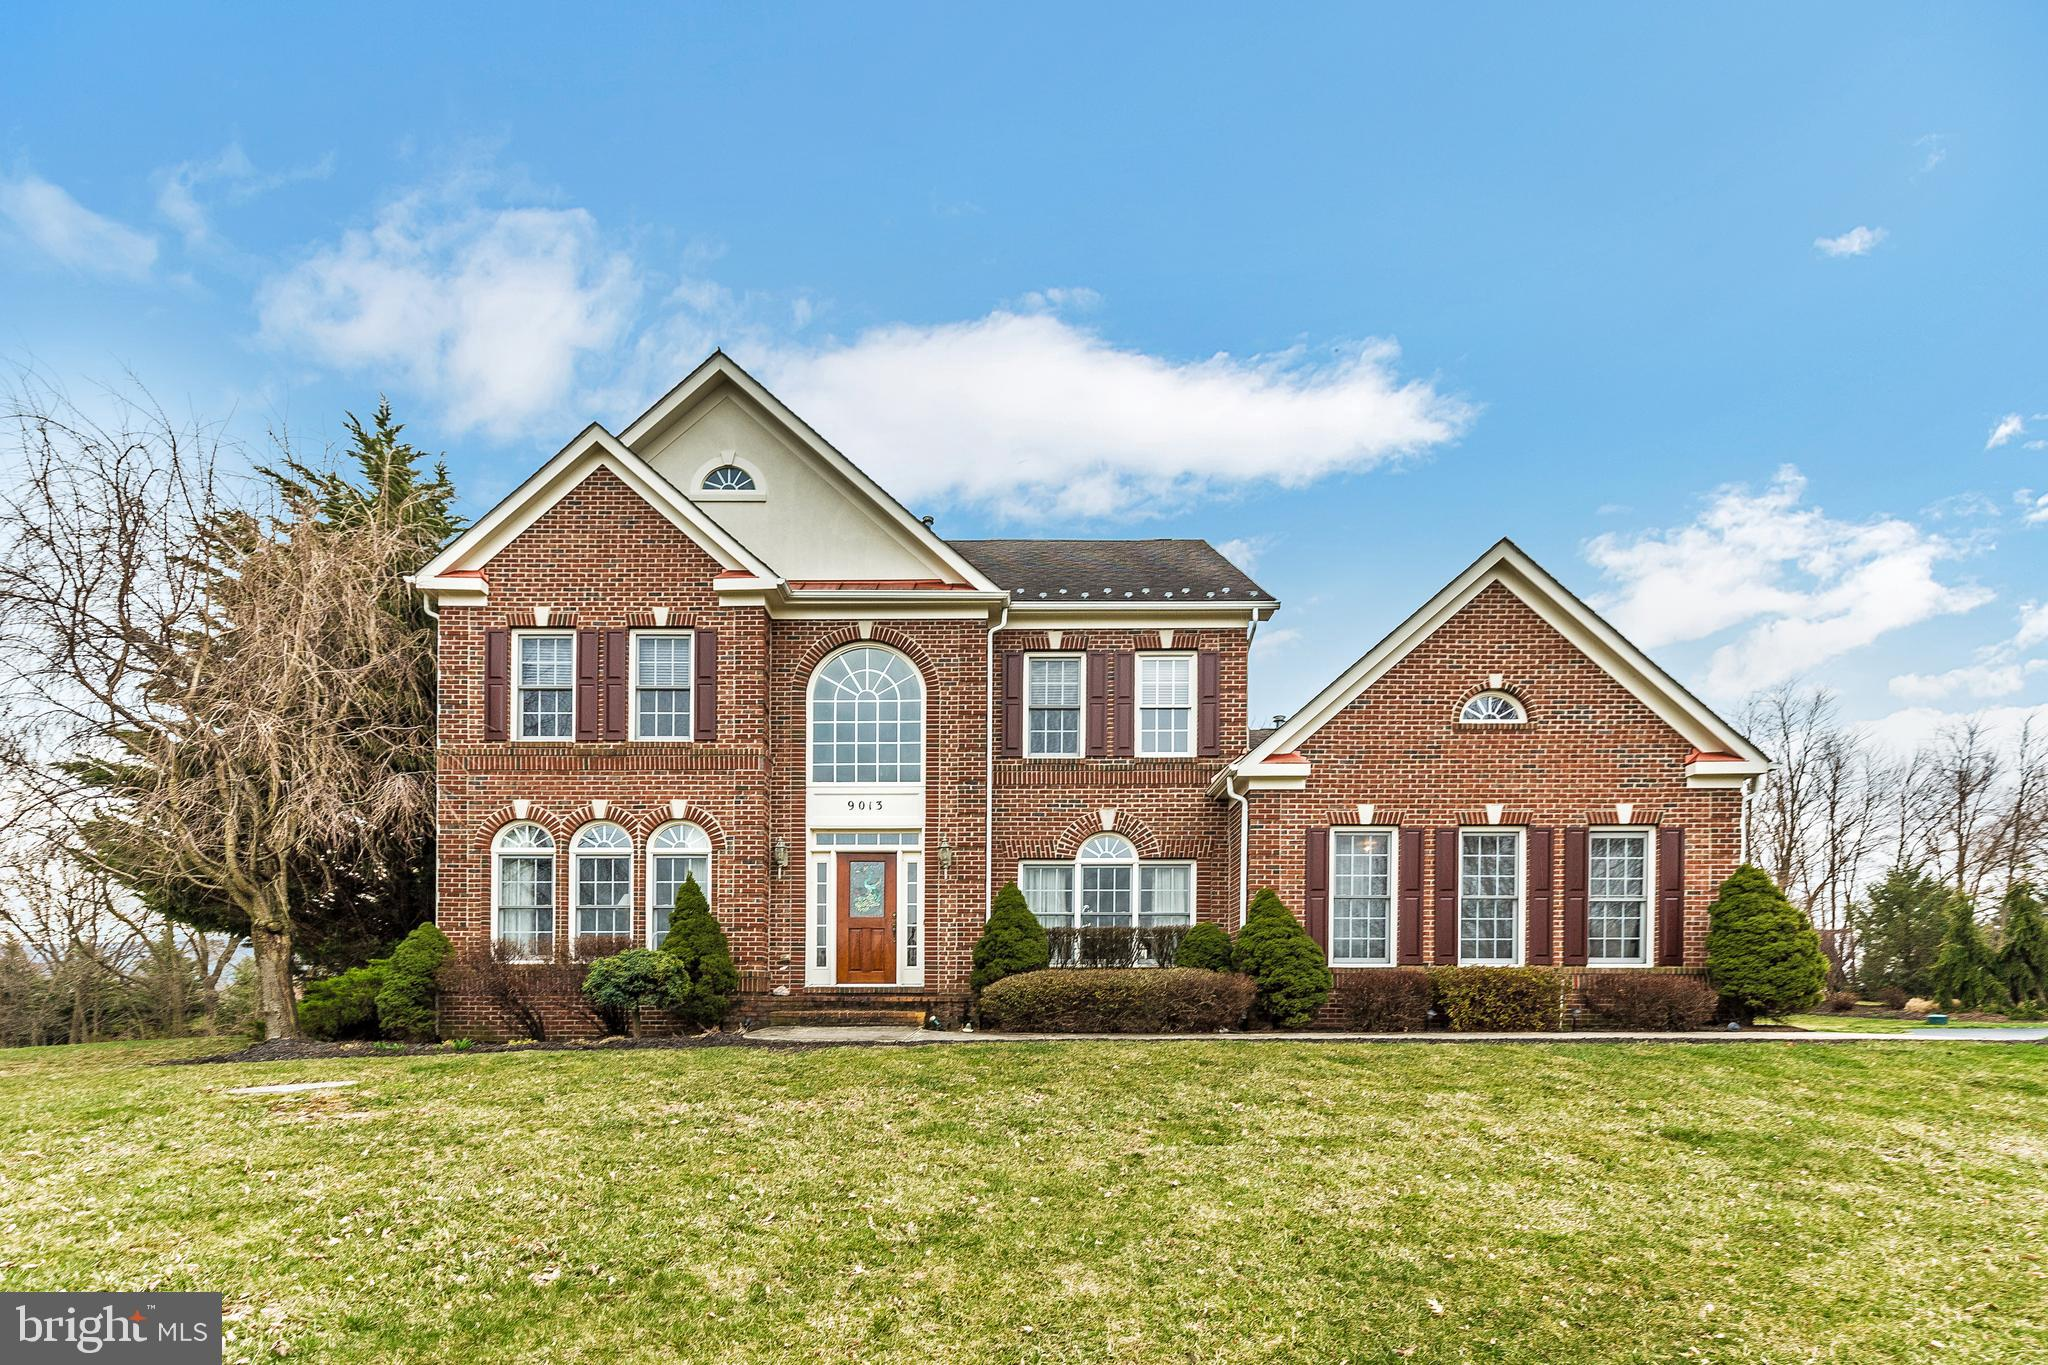 9013 WILDBERRY COURT, BOONSBORO, MD 21713